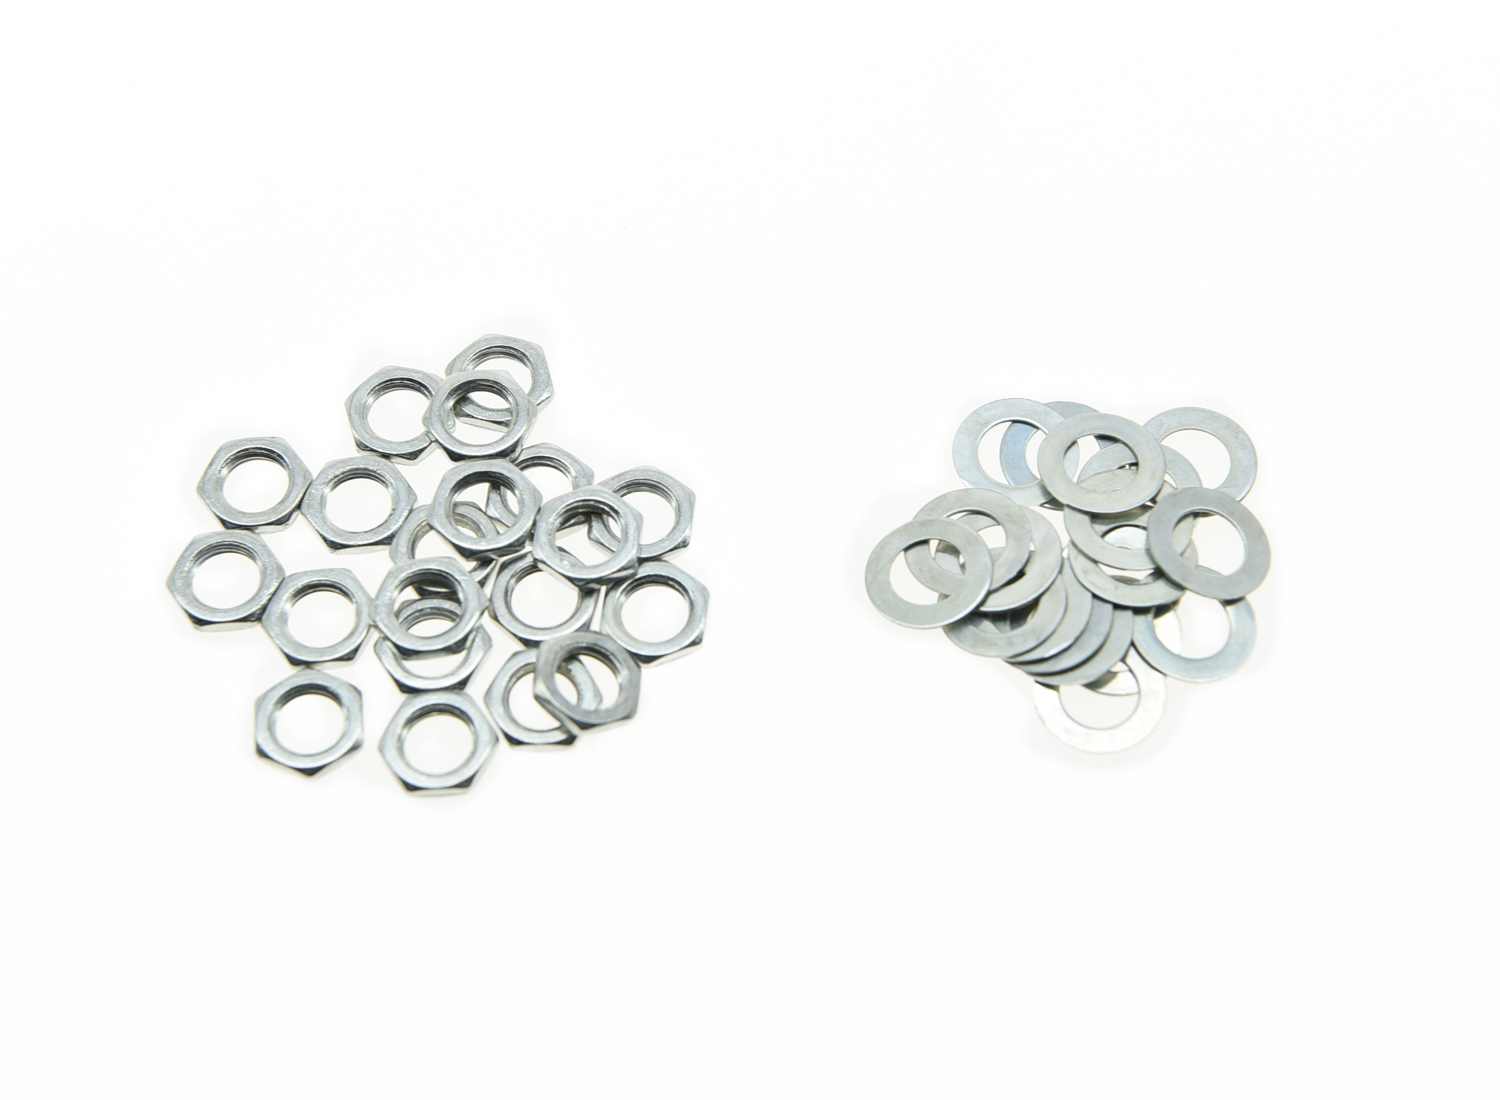 Pack of 20 Zinc Metric M7 Guitar Pots Nuts & Washers for 16mm Mini Metric Pots kaish 4pcs gold metal lp top hat bell knobs guitar bass knob for metric 5 8mm pots